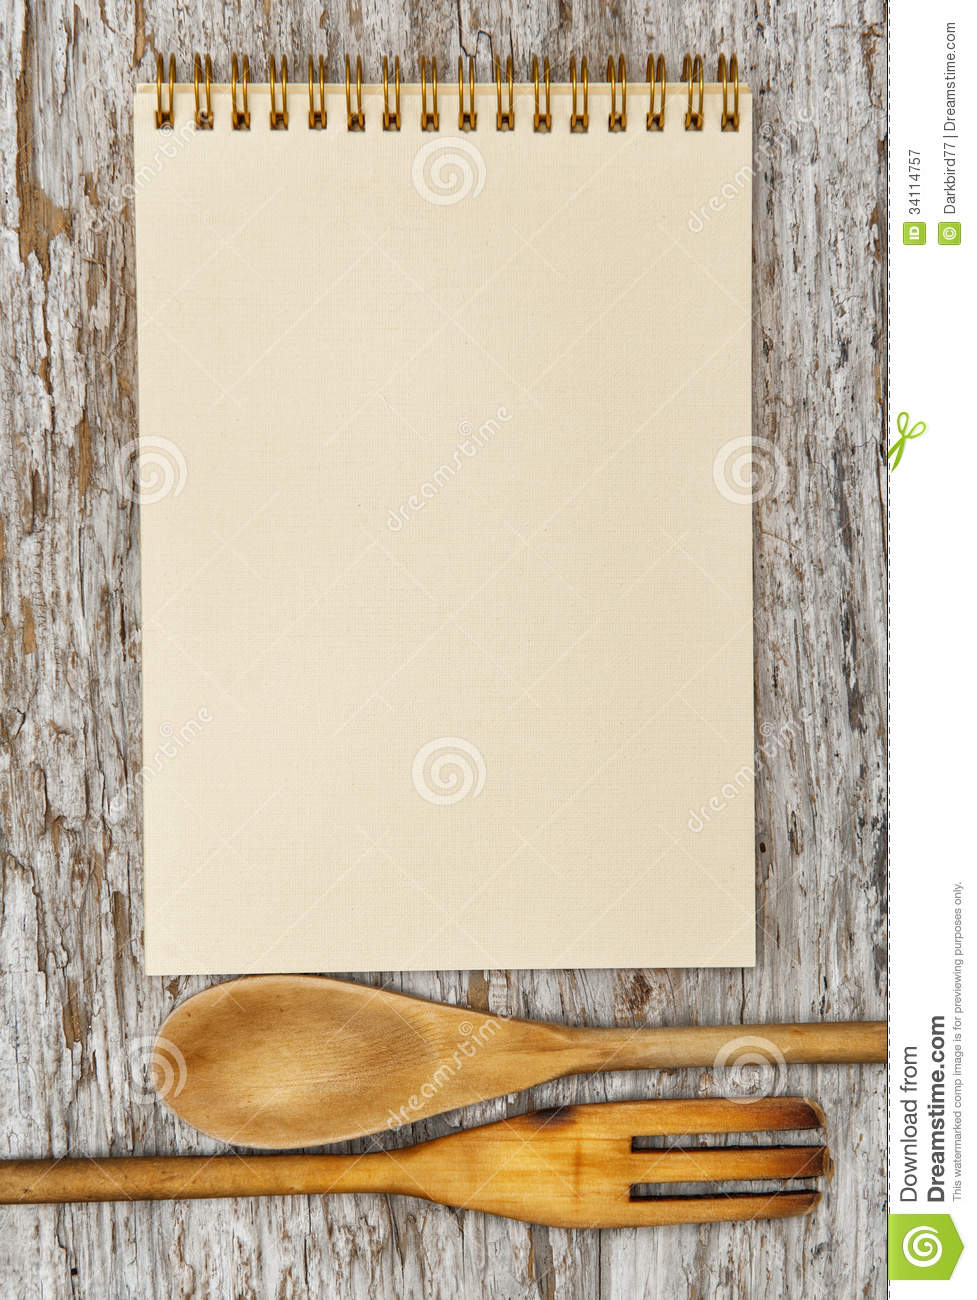 Cooking wood notebook powerpoint template cooking wood notebook kitchen utensils and paper spiral notebook on the old wood cooking wood notebook powerpoint template toneelgroepblik